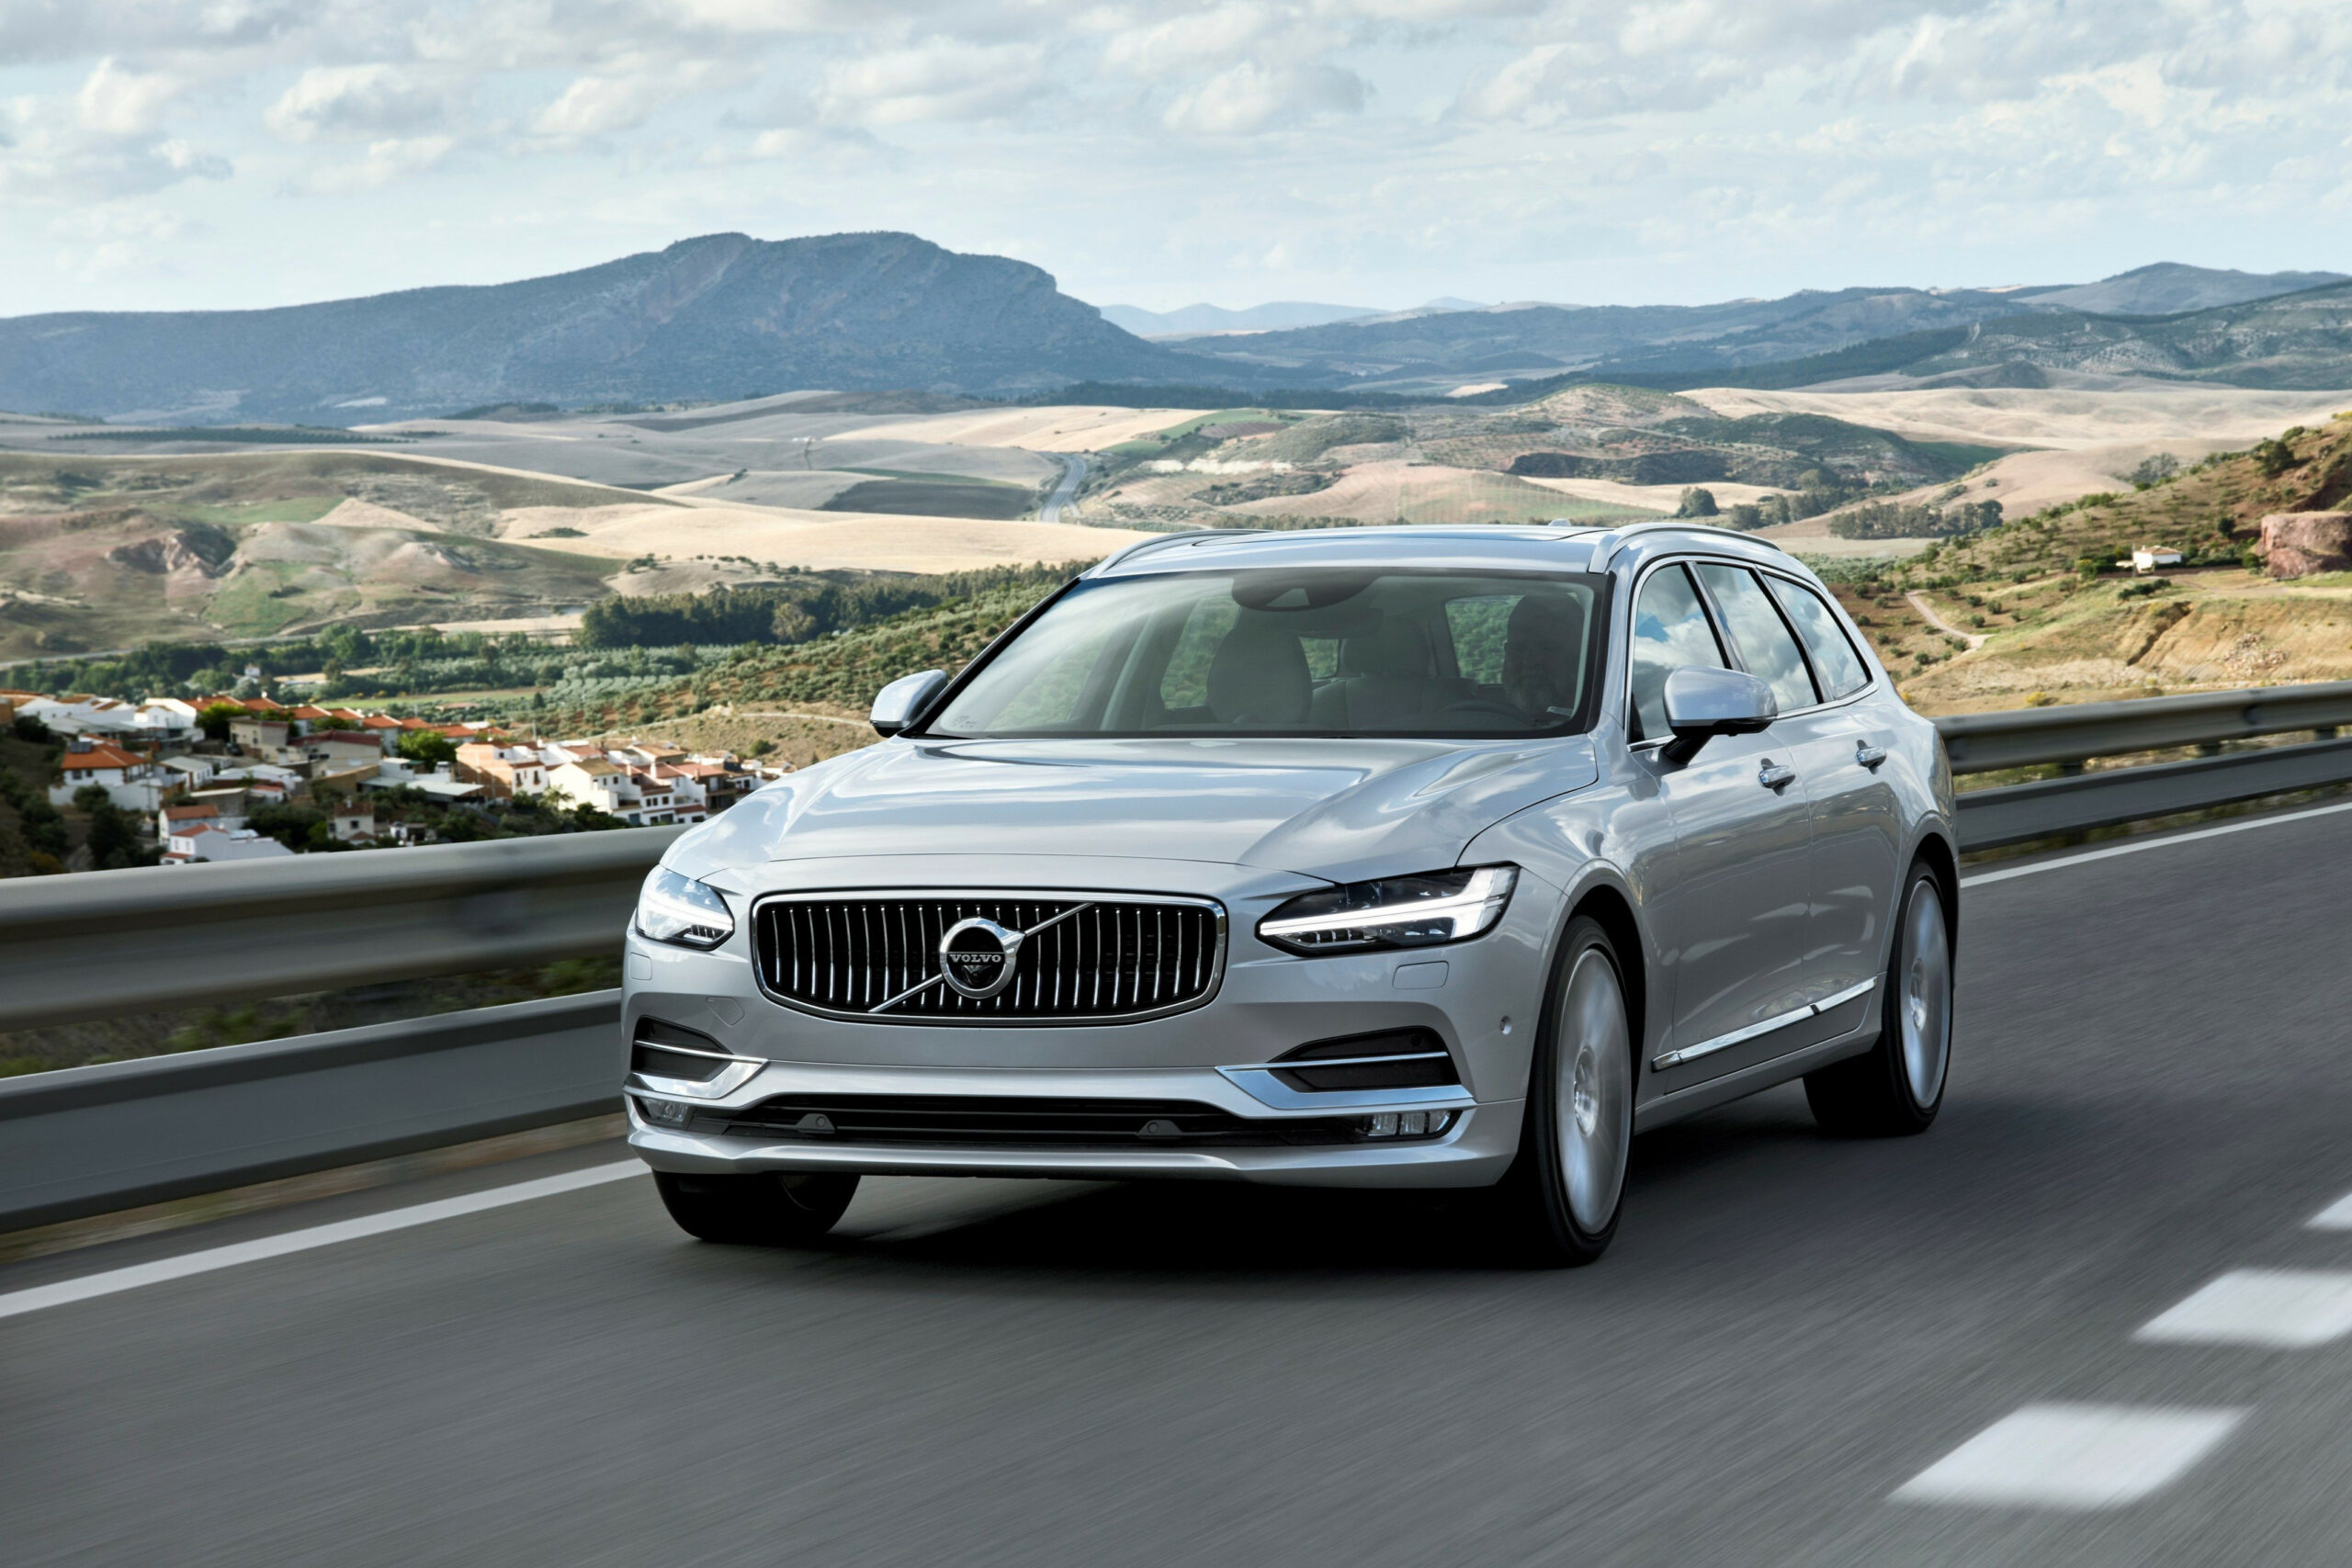 7 Volvo V7 Review, Pricing, and Specs - 2020 volvo models and prices